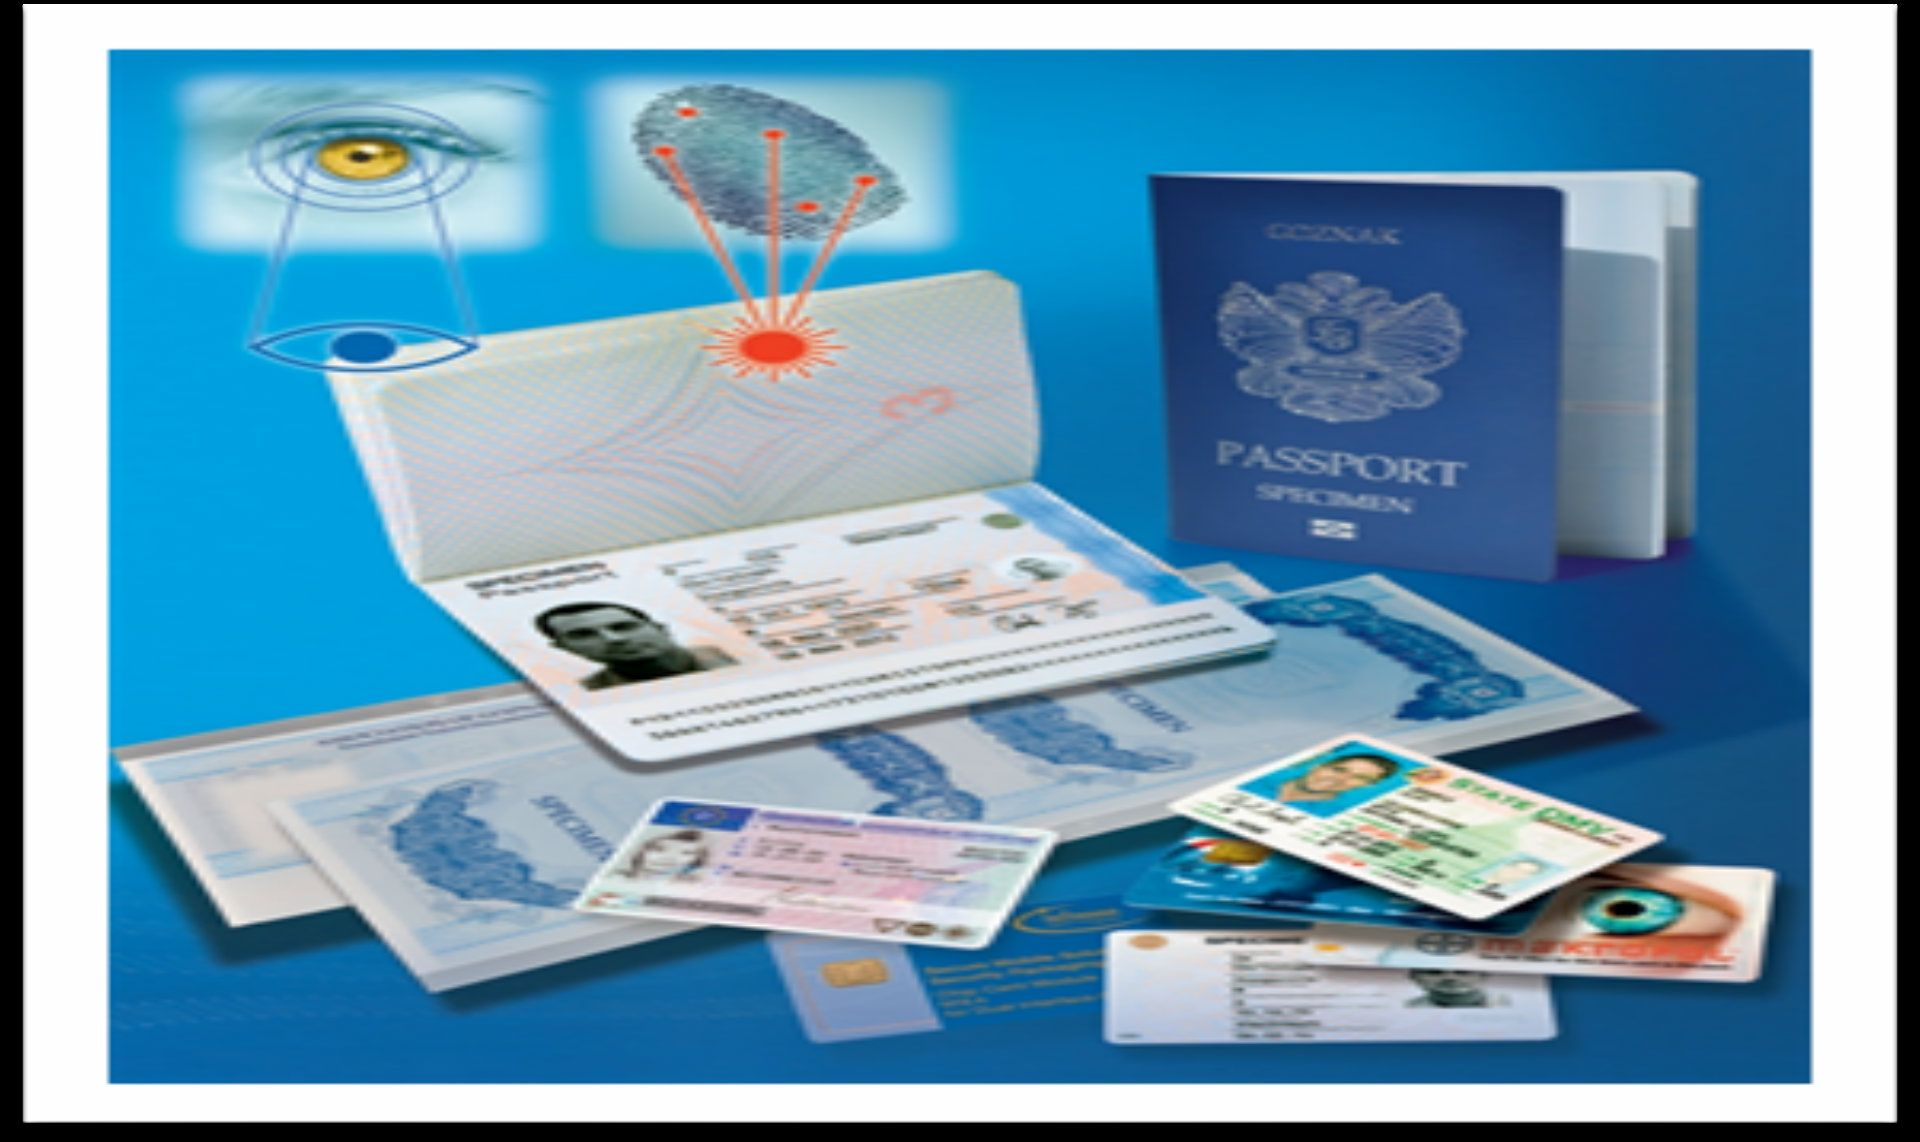 Home in 2020 (With images) Certificates online, Passport